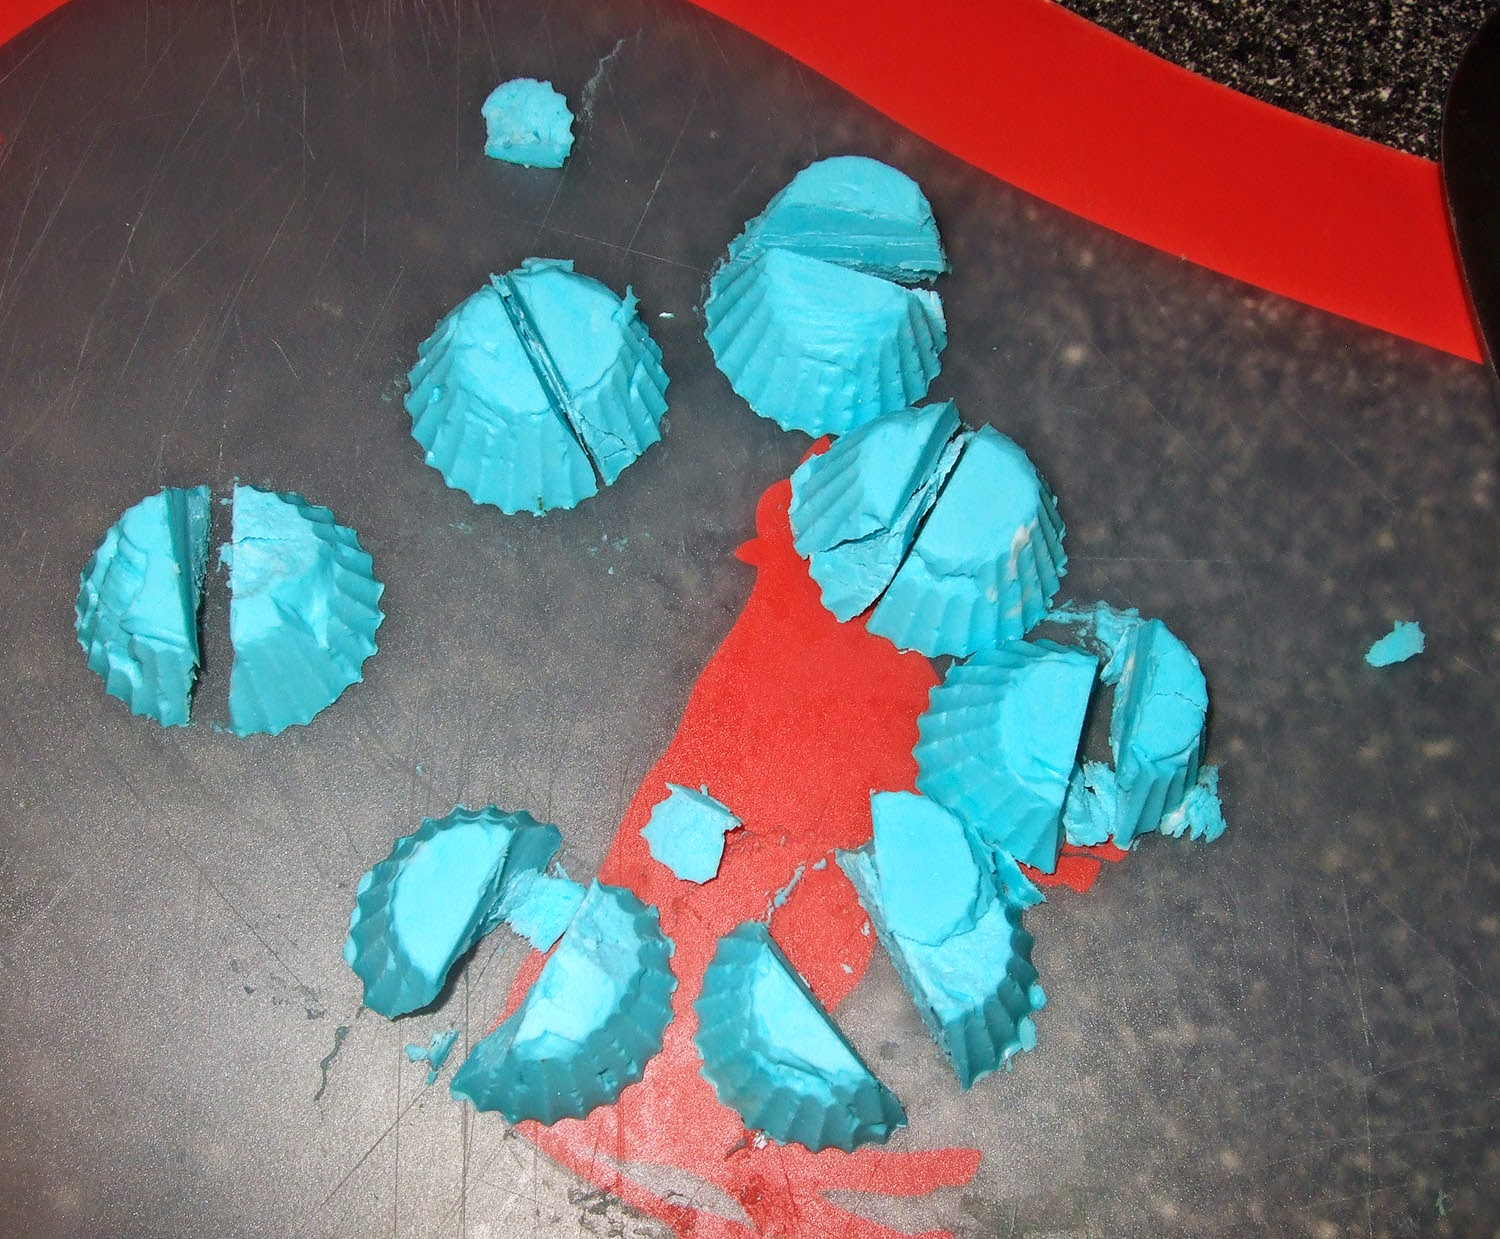 Cut up blue frosting bombs.